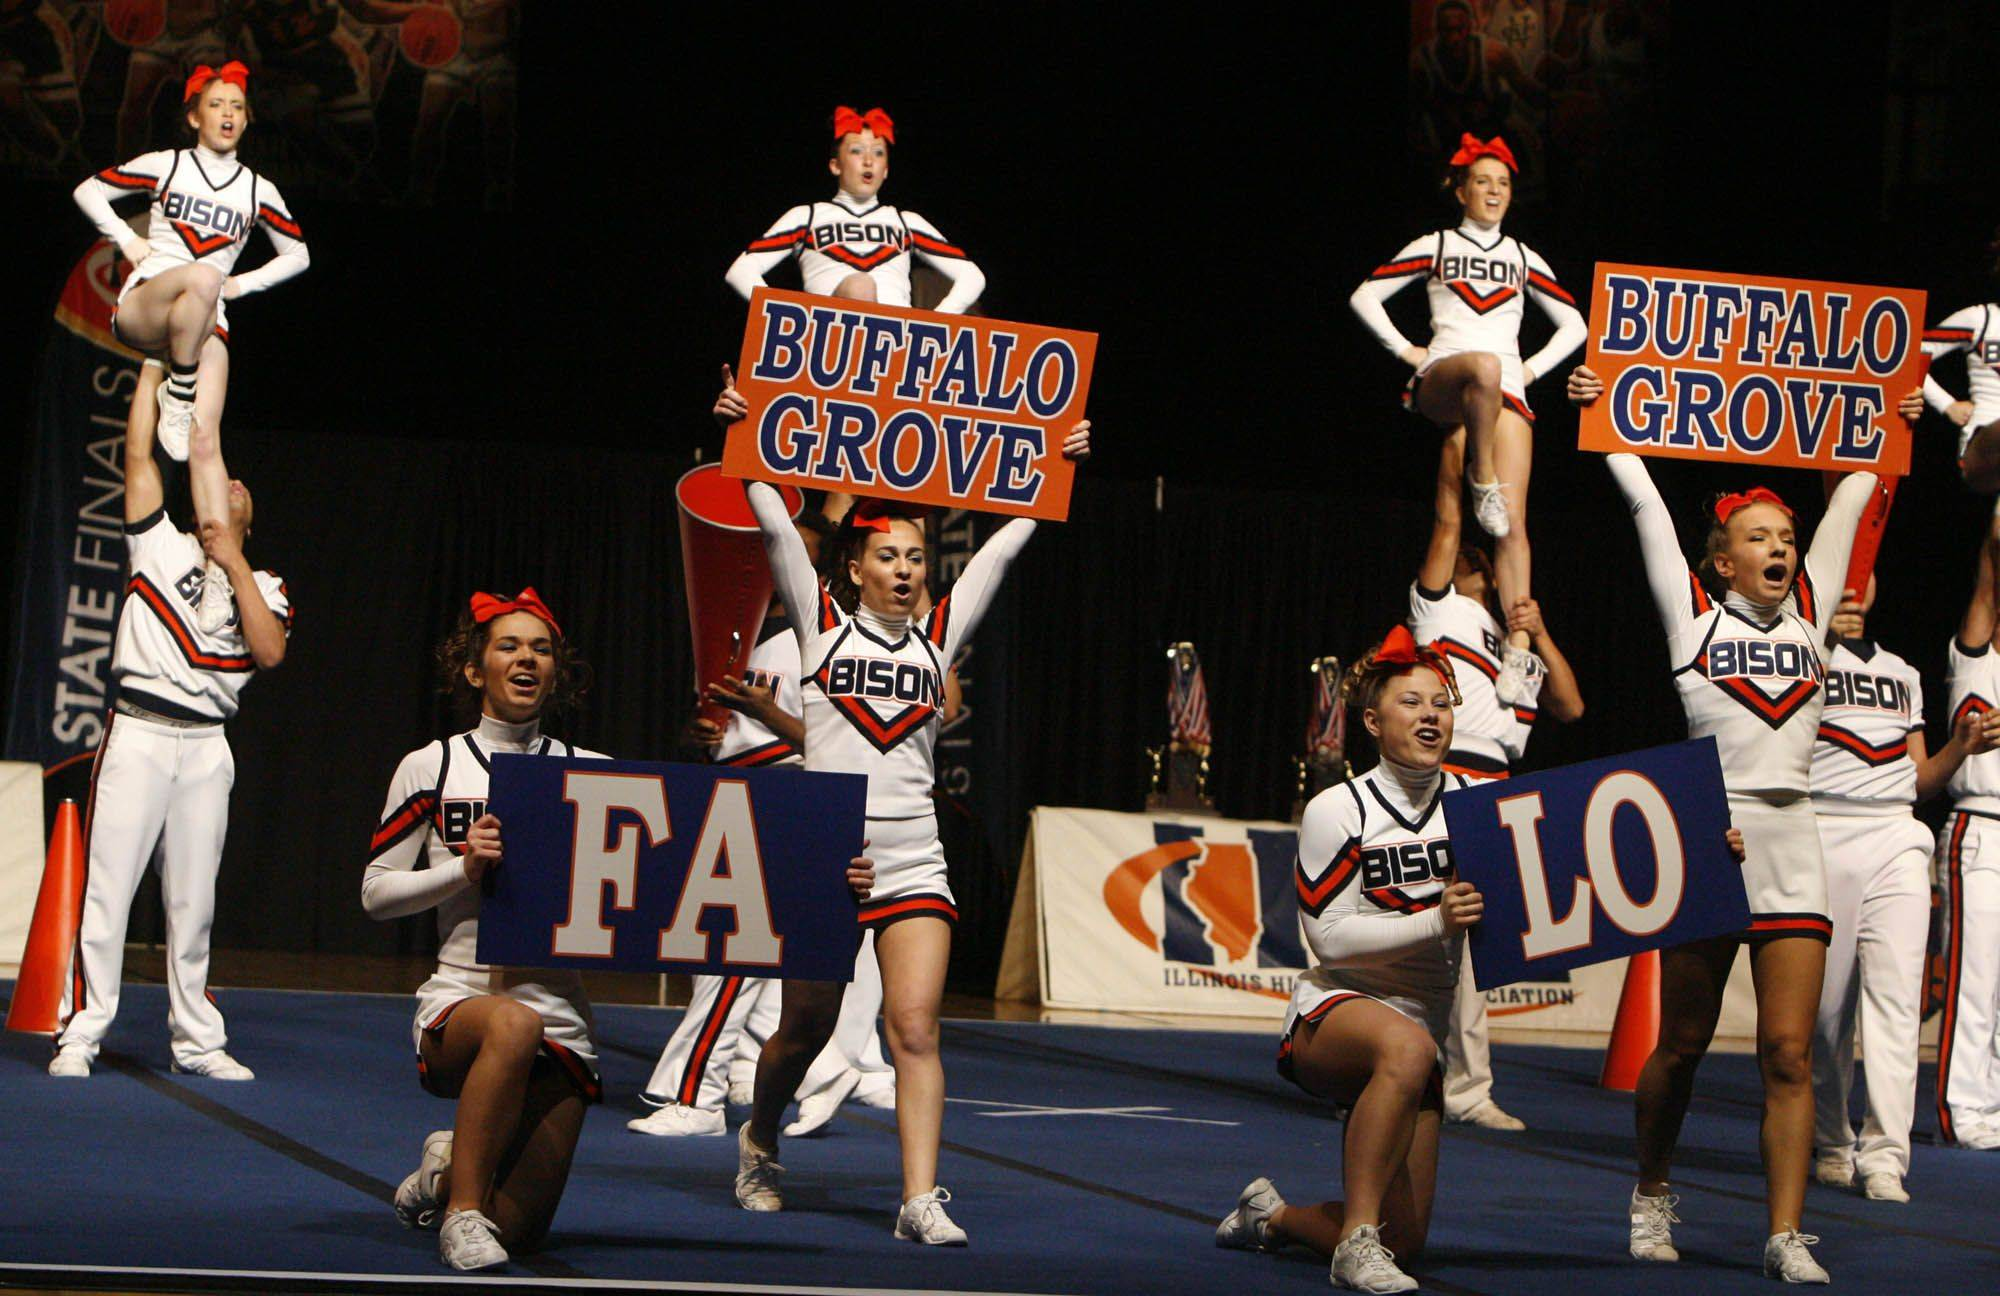 Buffalo Grove performs at IHSA cheerleading state finals at U.S. Cellular Coliseum in Bloomington on Saturday, February 4th.